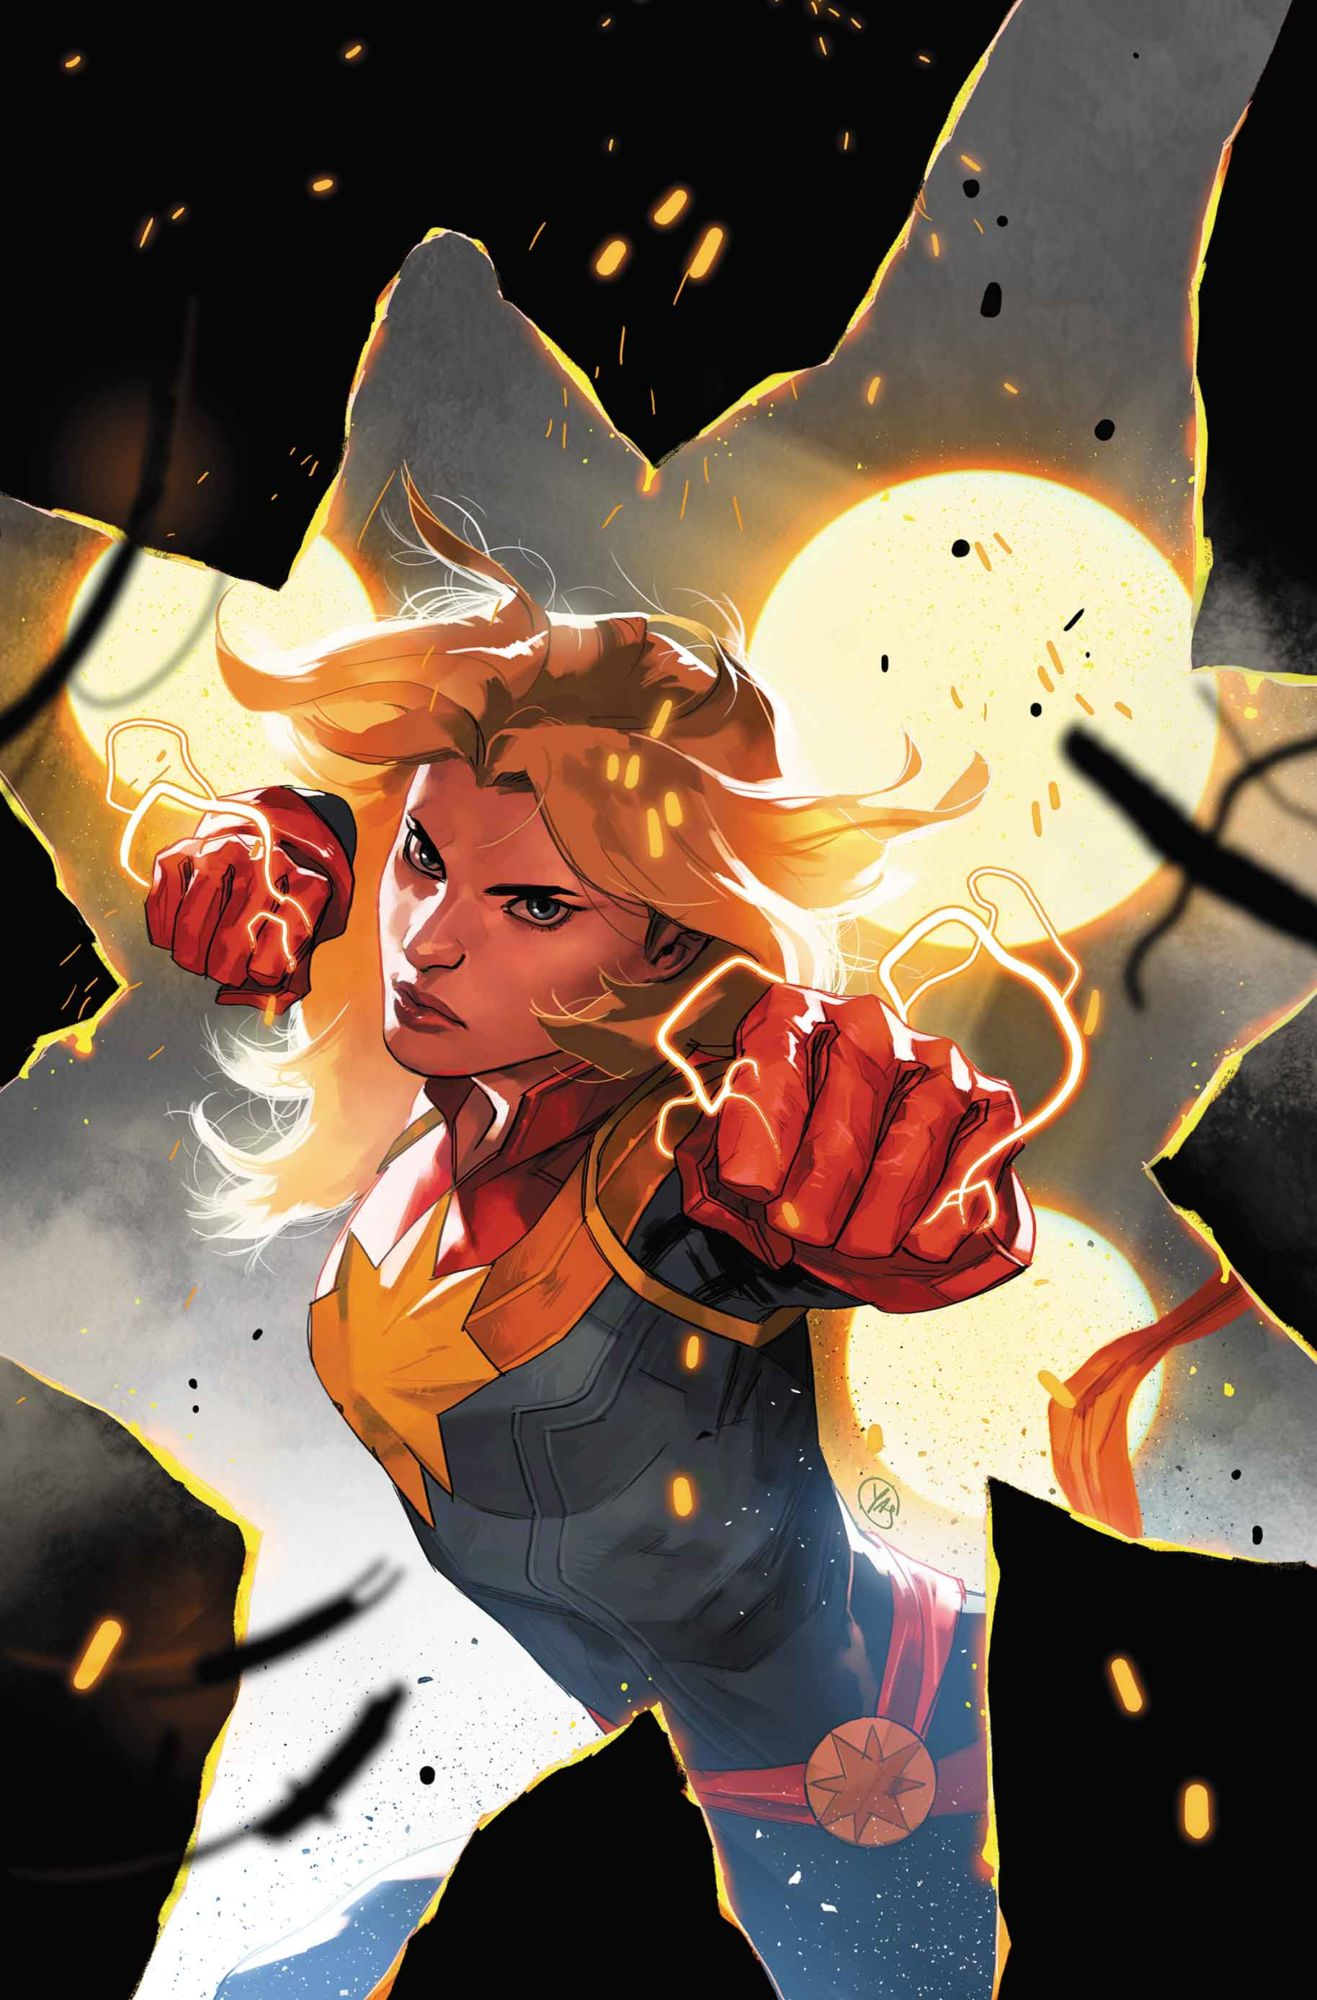 Fearless #1 - Captain Marvel, Storm, Invisible Woman, Together in One Comic